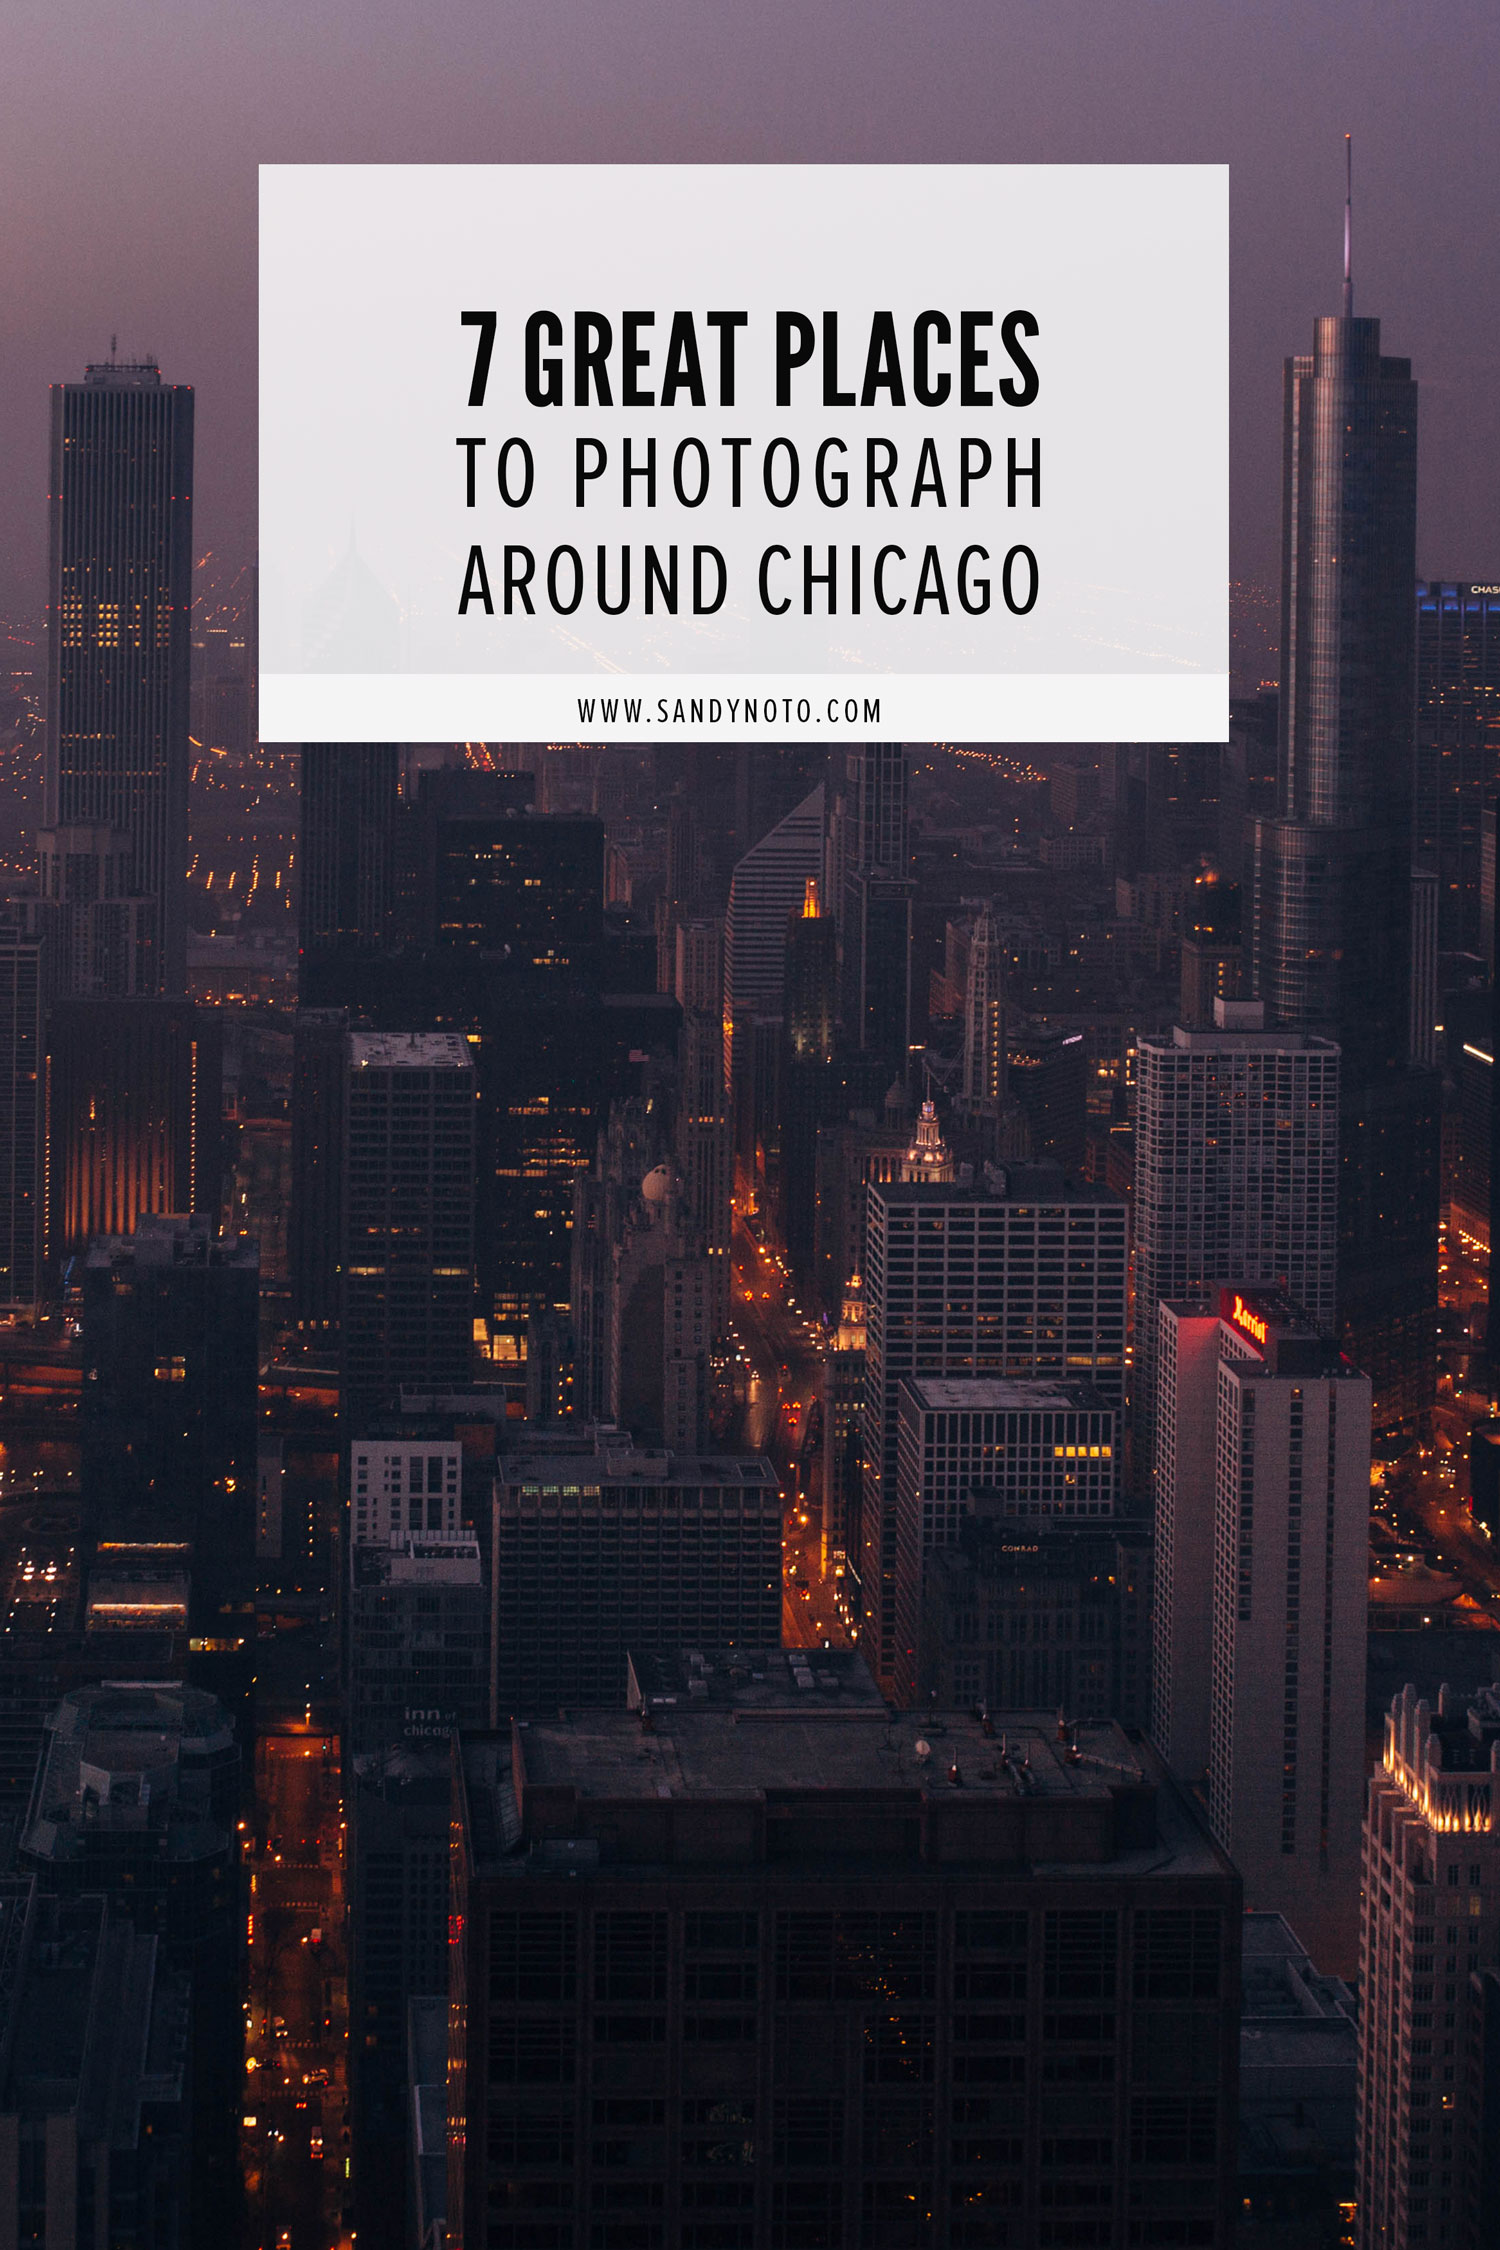 7 spots to photograph around Chicago